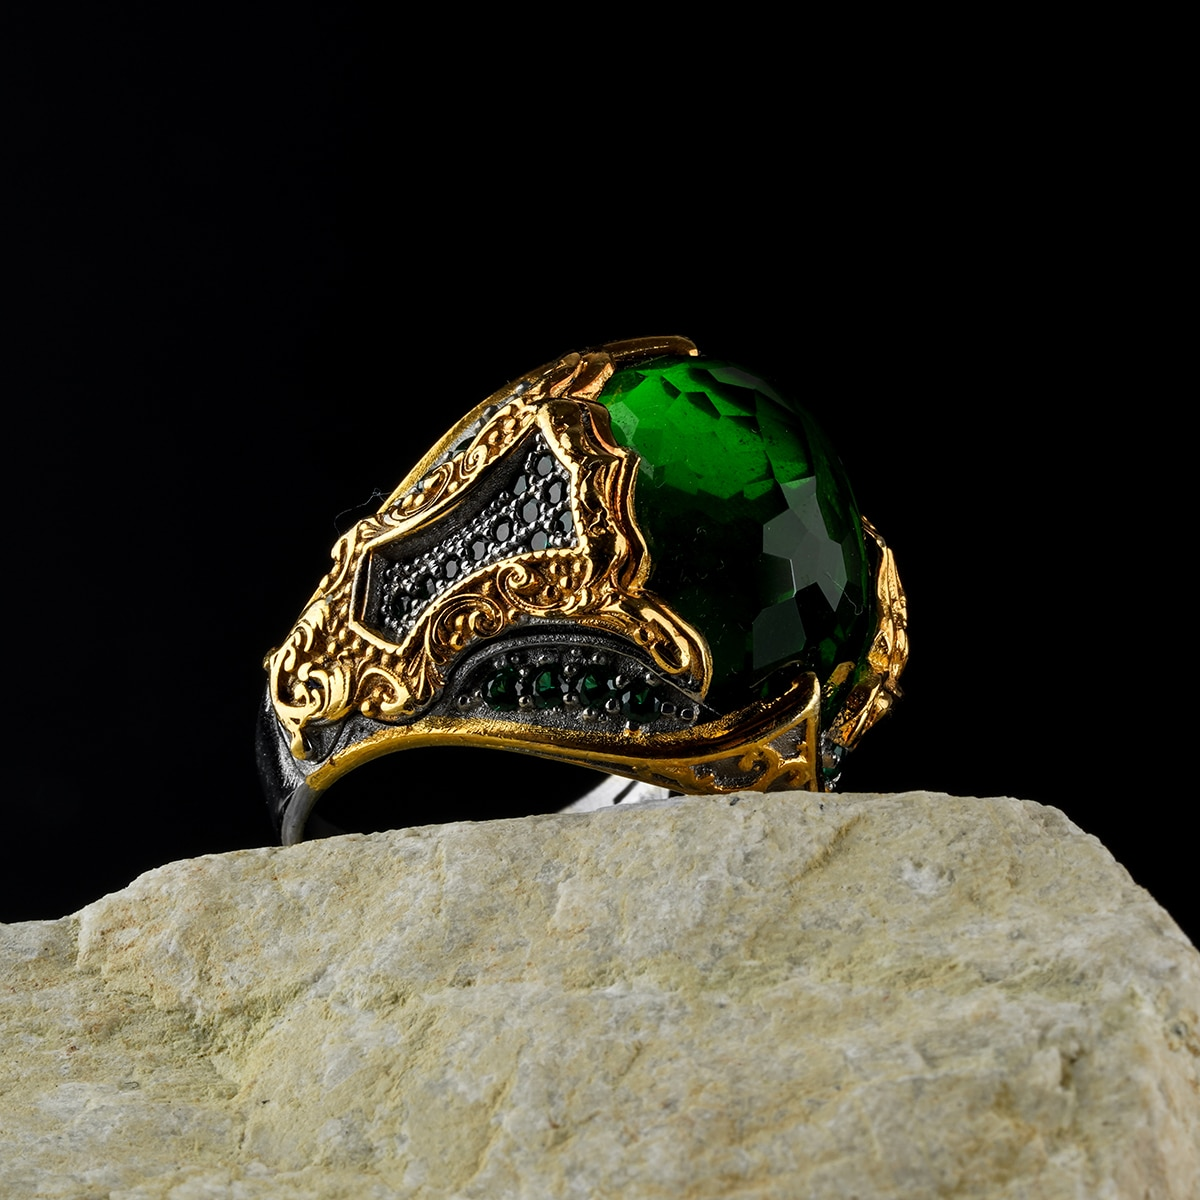 Custom Jewelry Guaranteed High-quality 925 Sterling Silver zircon stone ring design green color in a luxurious way for men with